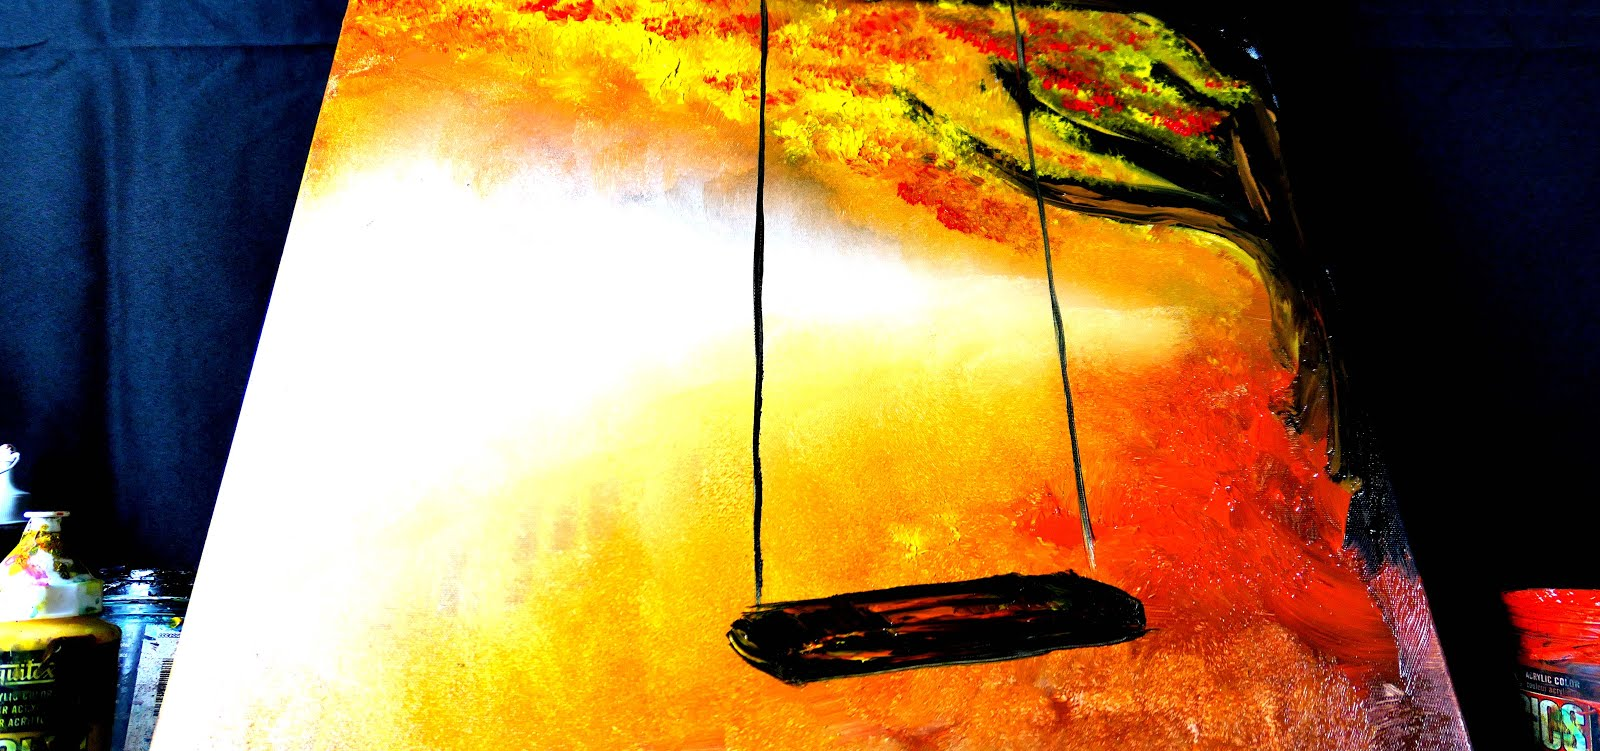 FREE ART VIDEO LESSON - SWING ON A TREE AUTUMN